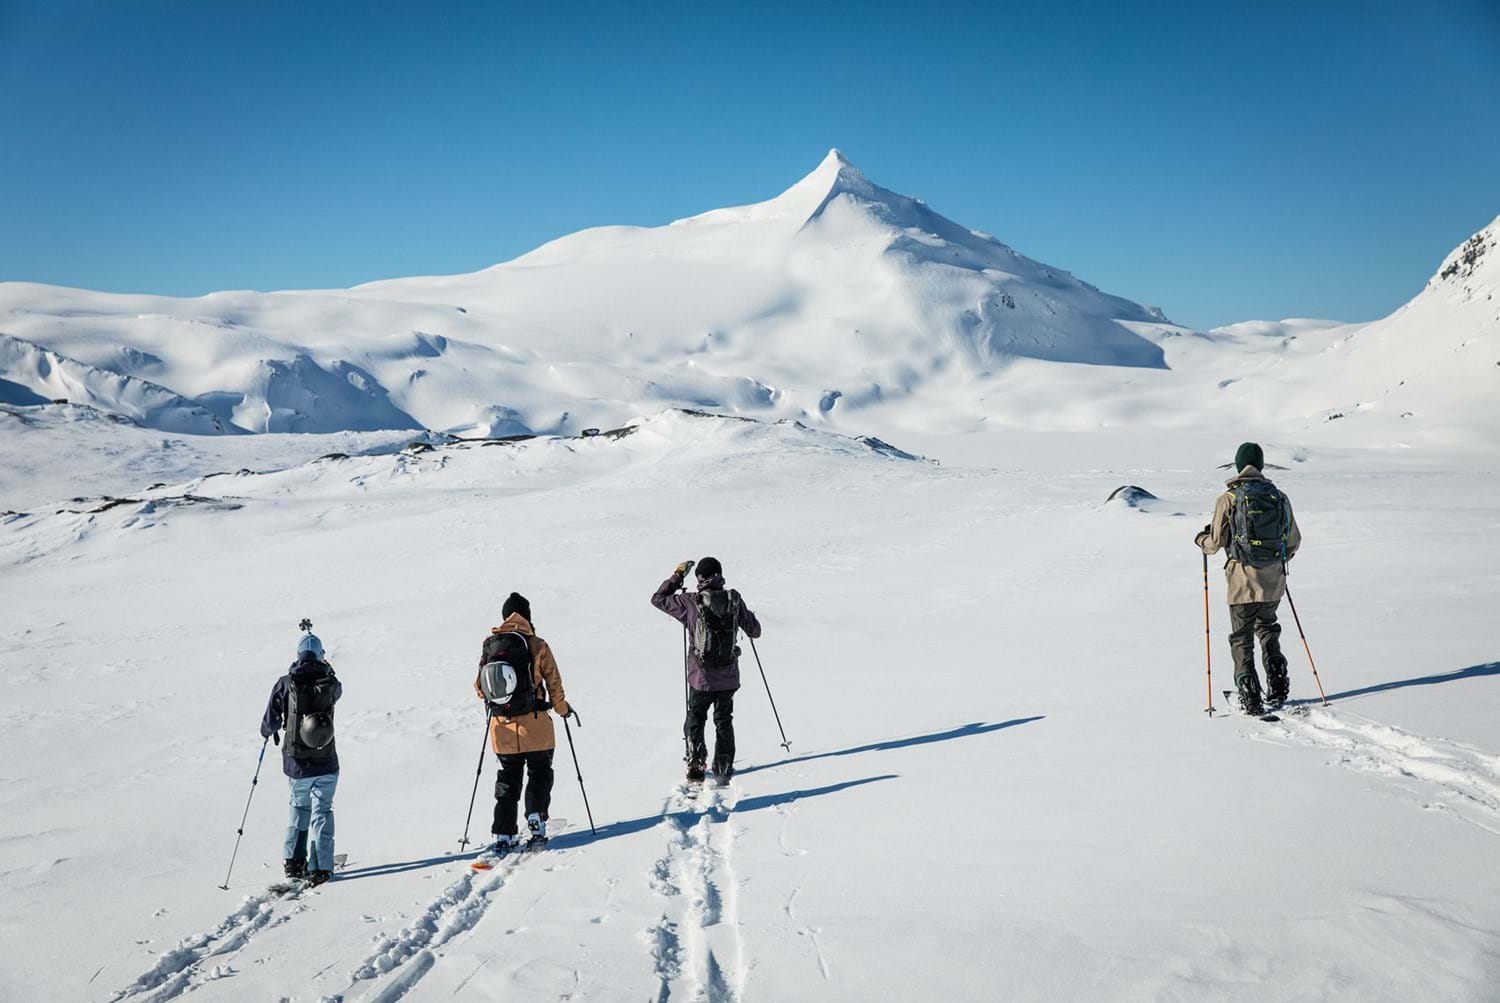 Houdinisportswear_sustainability_spring_skiing_touring_guide_article_1.jpg